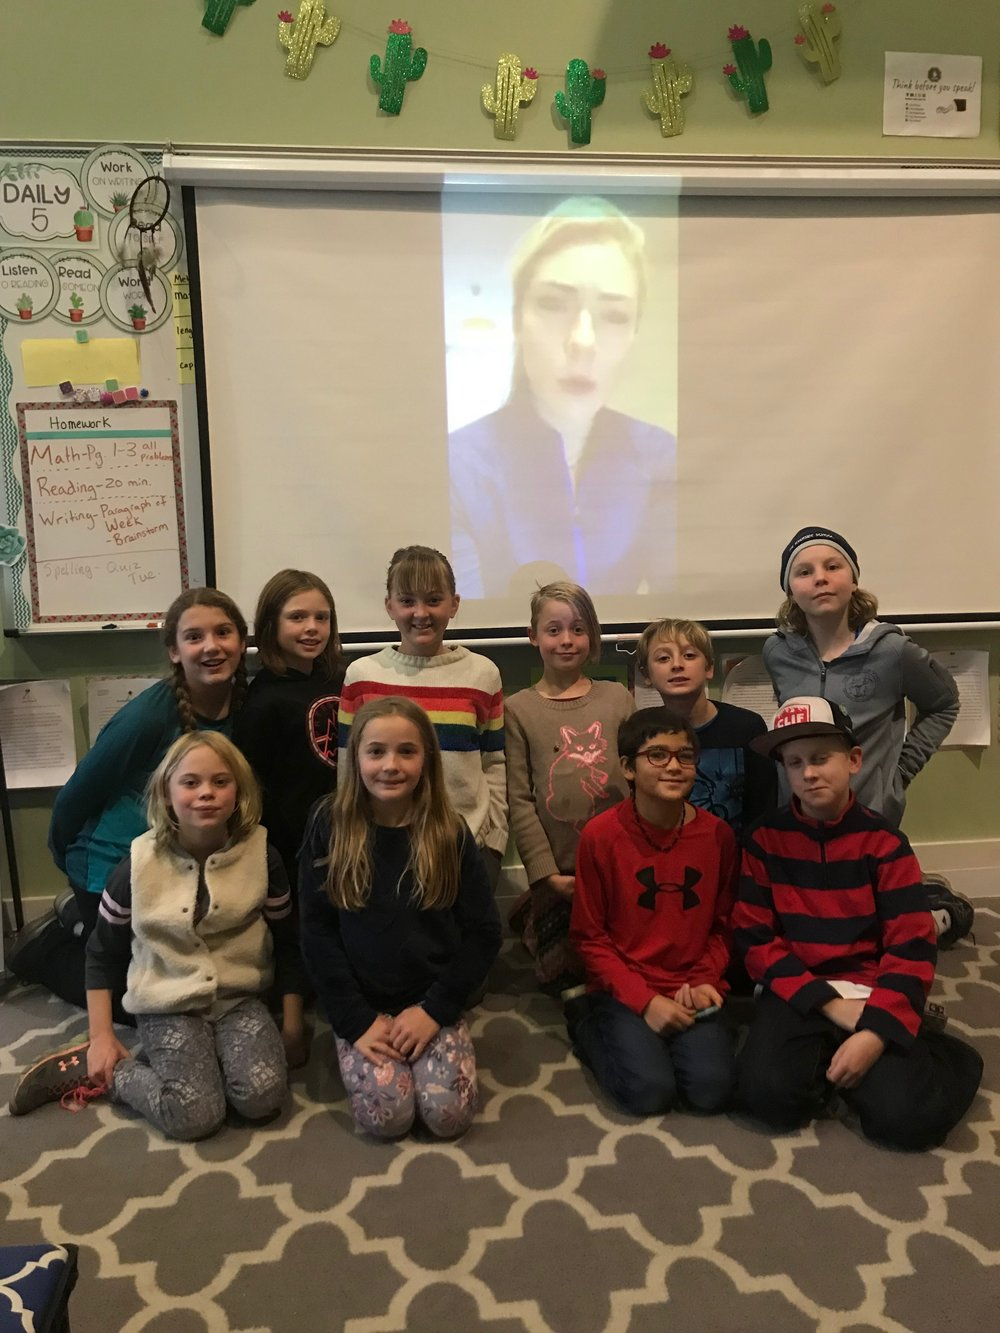 Riverside 4th grade students watch Mikaela Shiffrin's live Facebook feed from Europe as part of the school's Biography Fair. Pictured are front (l-r) Molly Aeberbard, Esme Cobb, Kingston Newell, Sylvan Balcom, and back (l-f) Gabi Young, Sofia Bunnell, Brooklynn Hibshman, Pearl Arberbard, Lyric Golden, and Julia Spence.